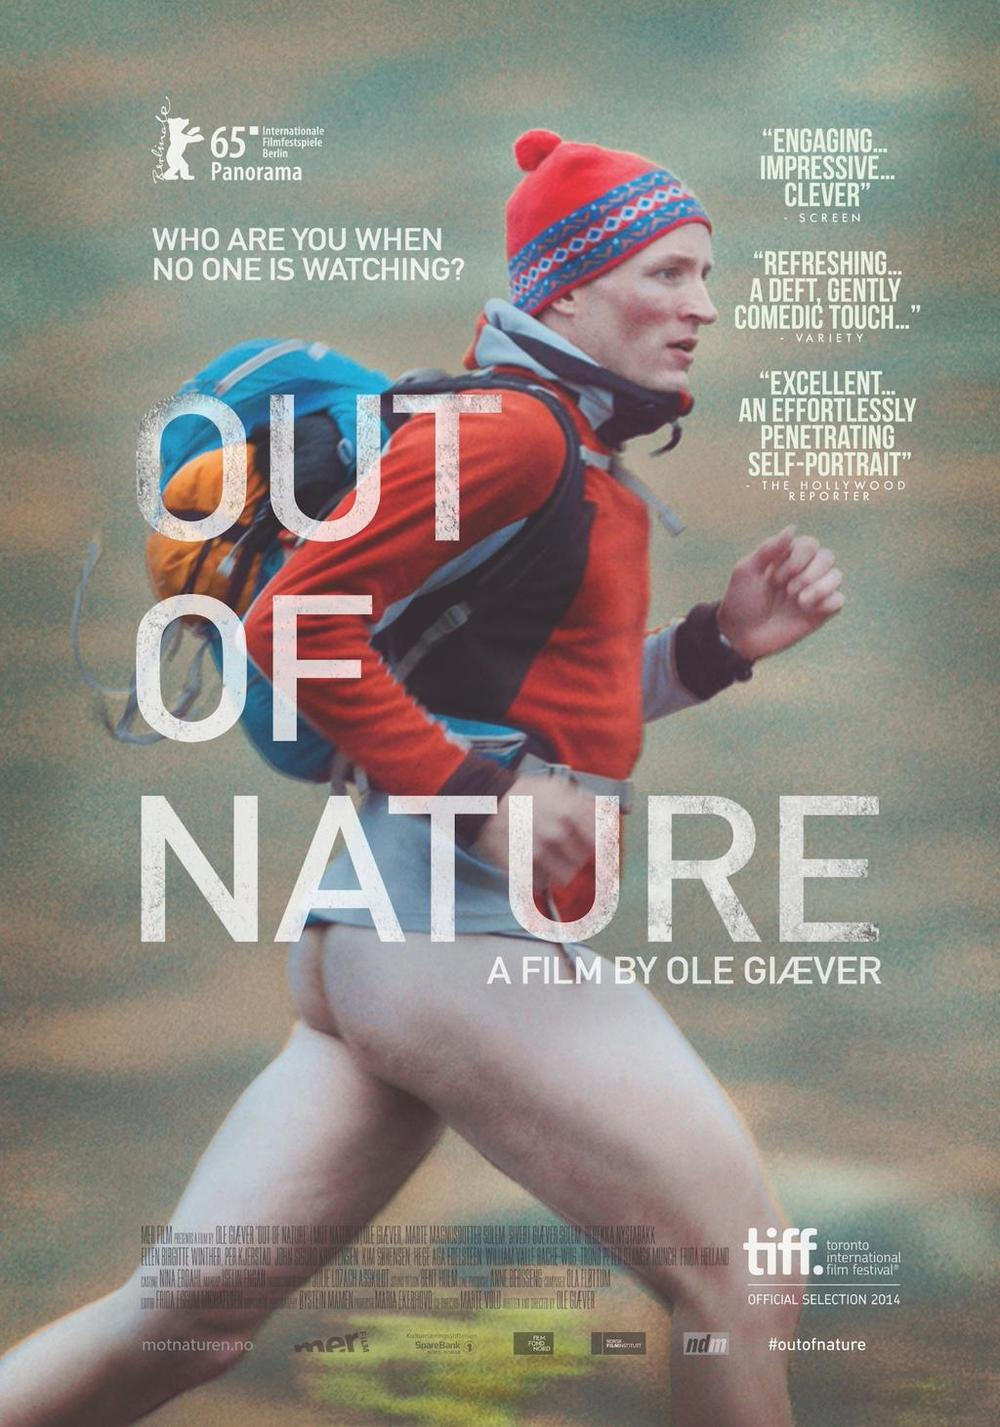 mot-naturen-out-of-nature-poster-affiche.jpeg